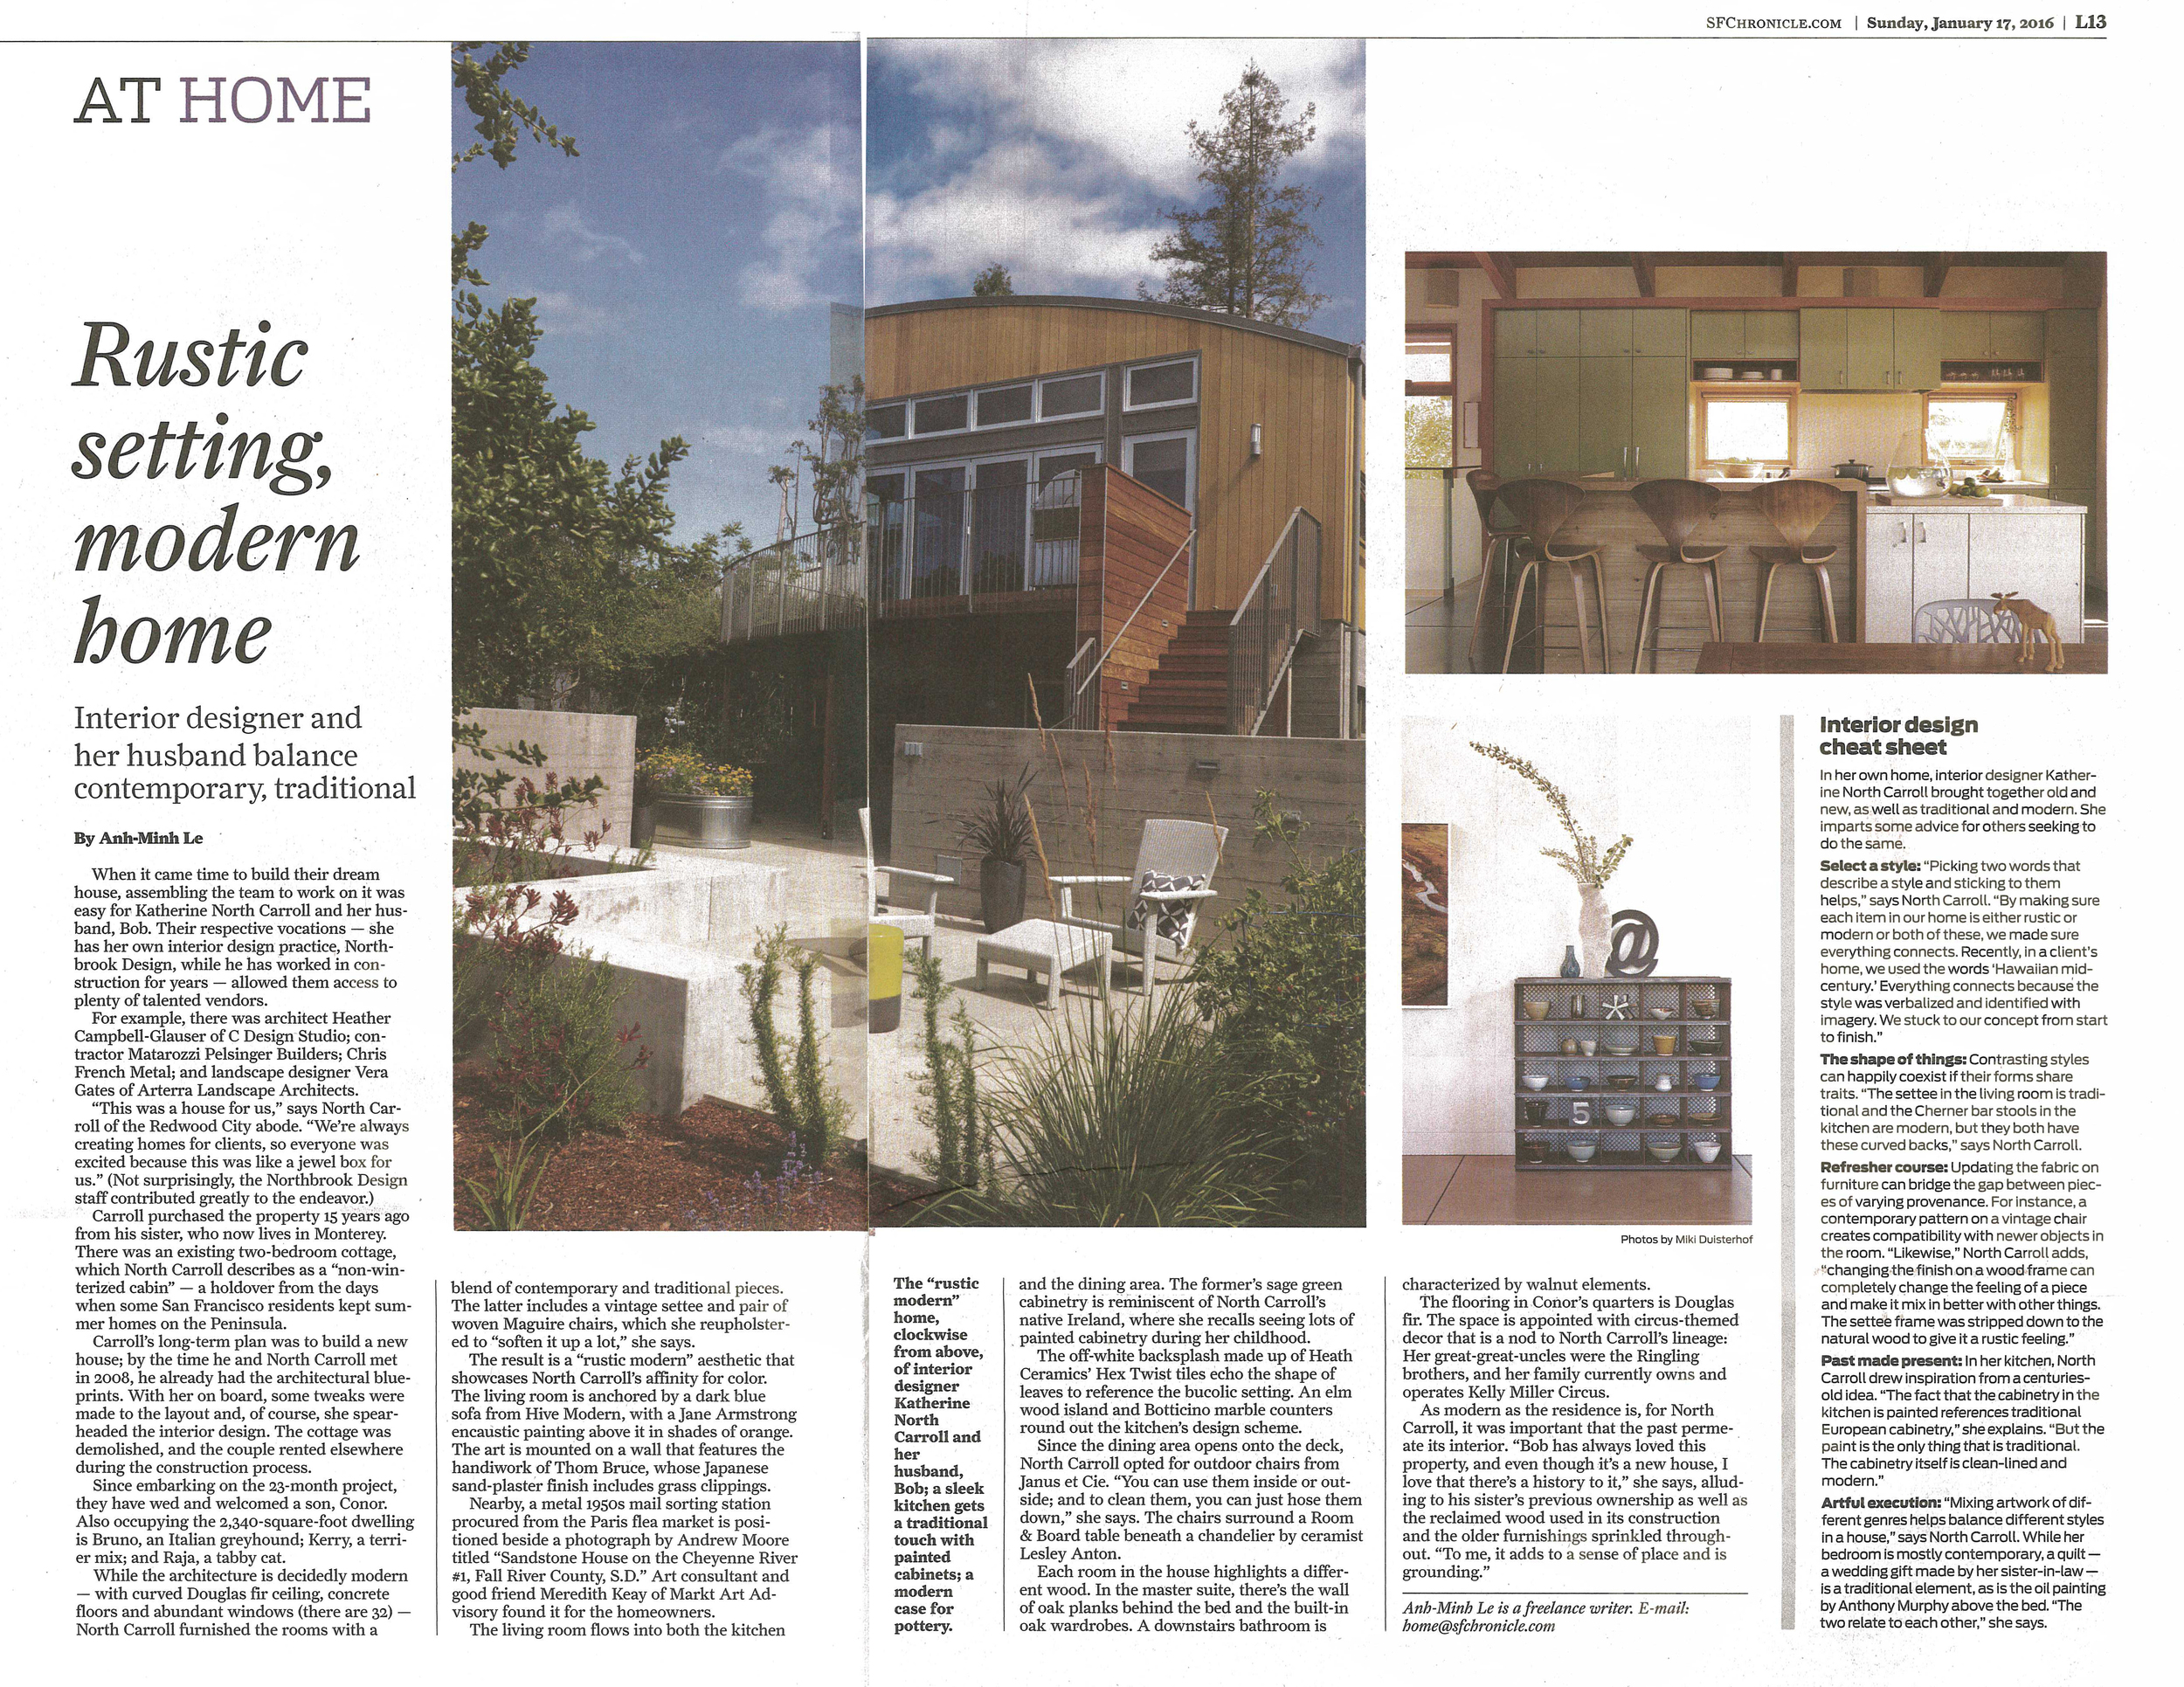 A seating area Arterra designed for the home of Katherine North Carroll is featured in the Chronicle.